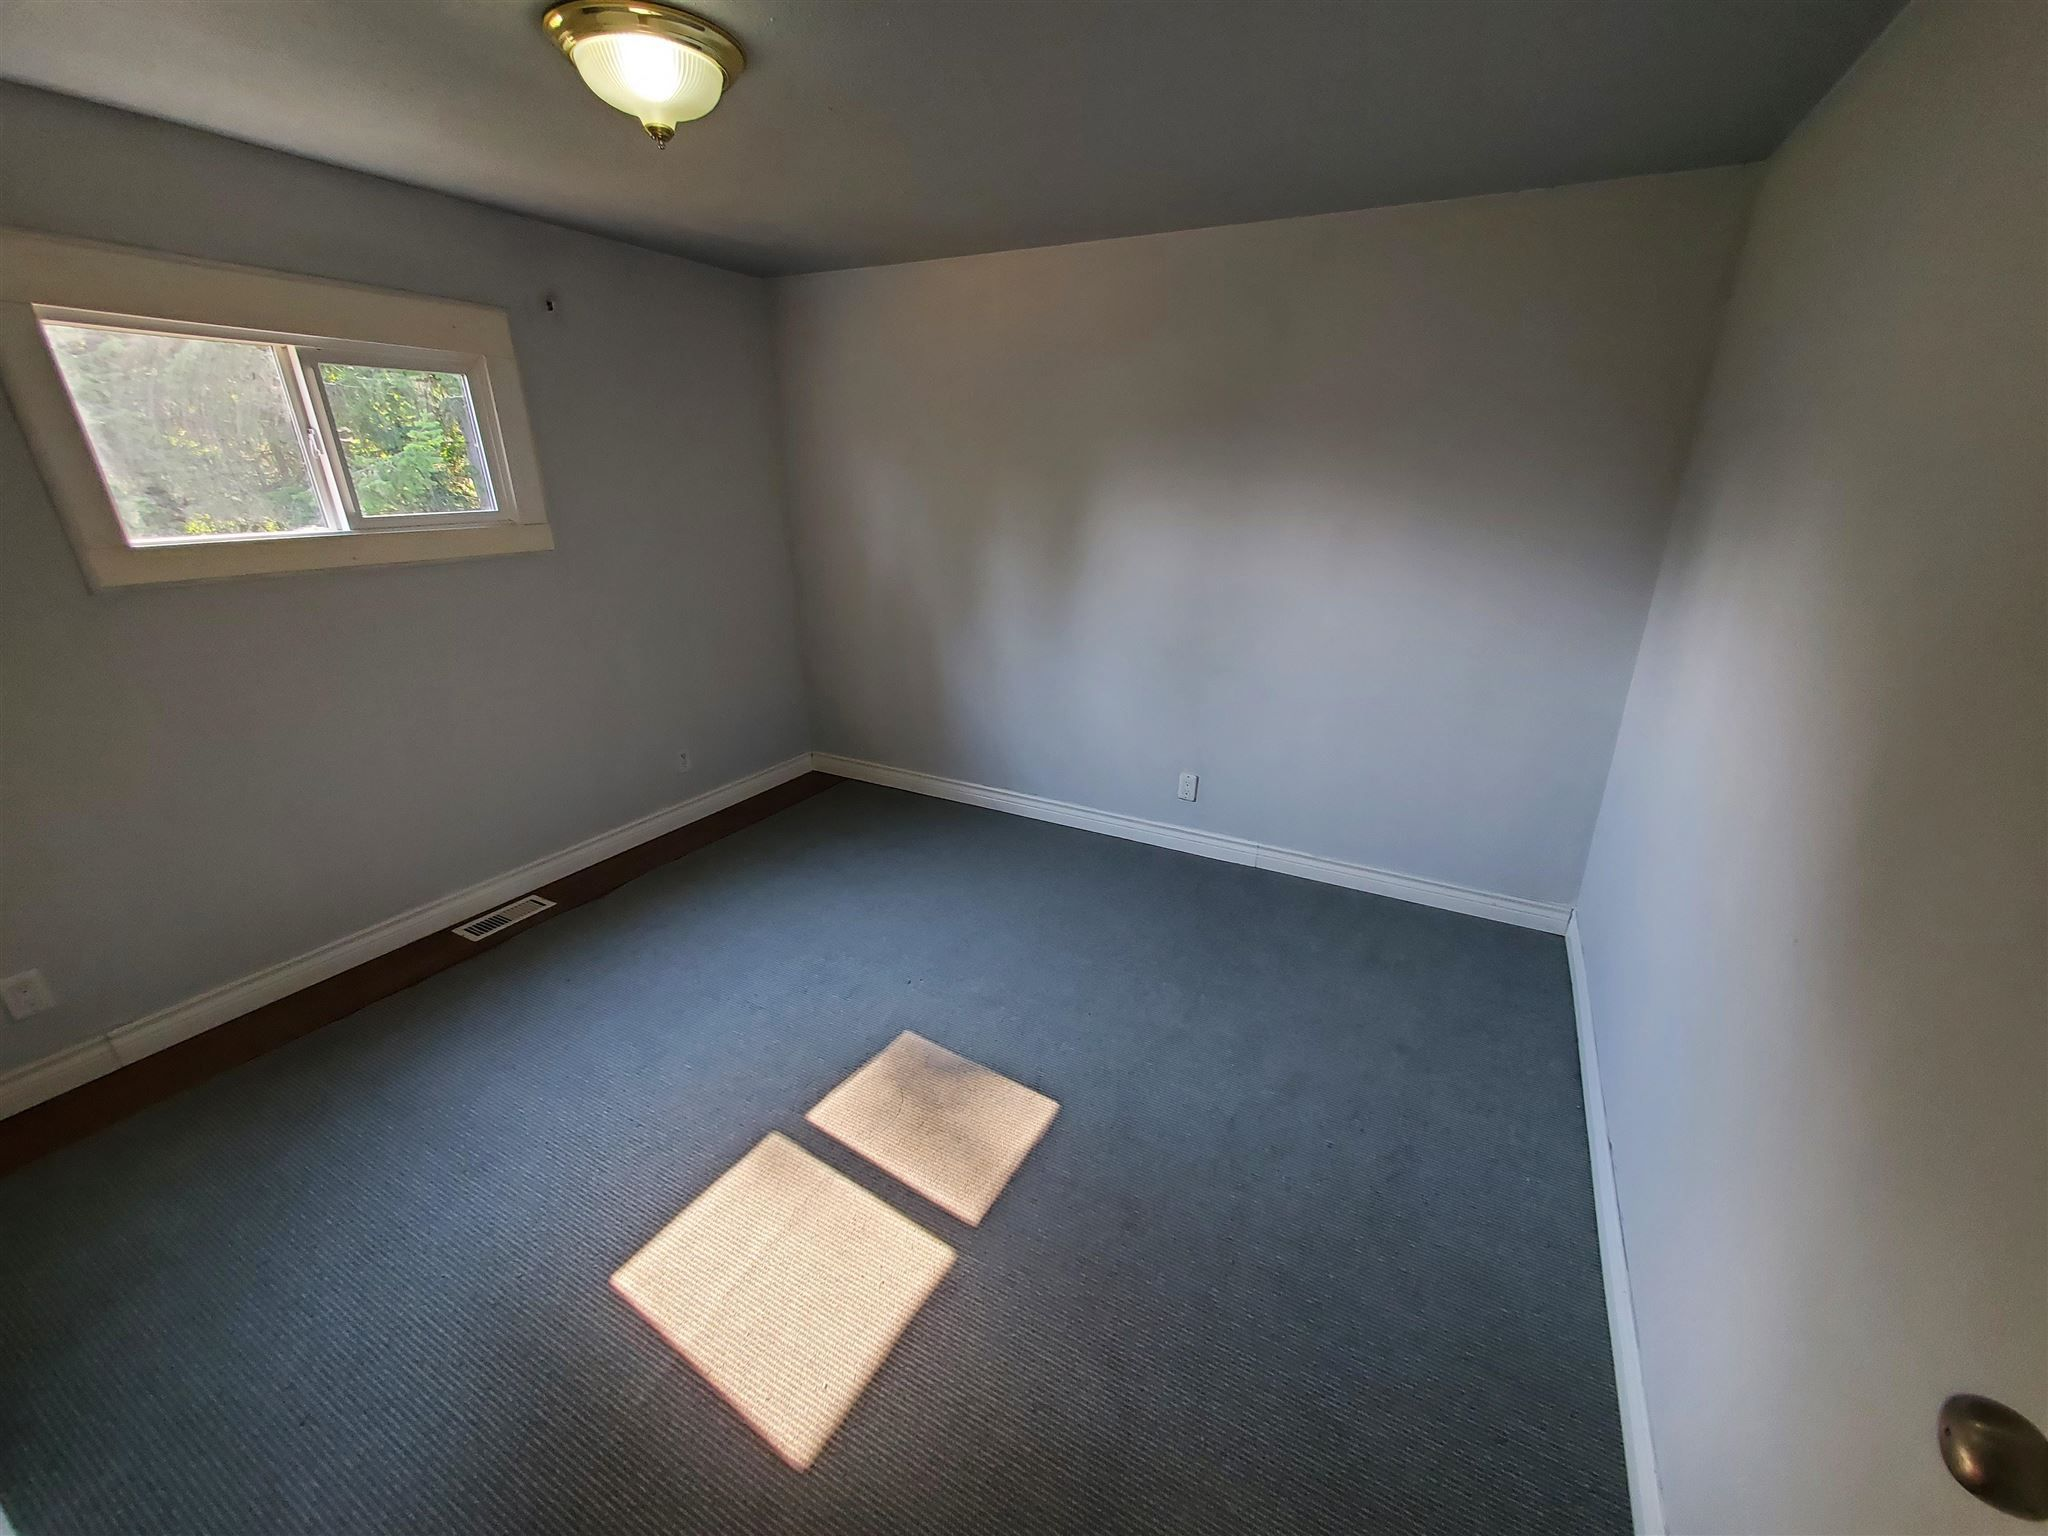 Photo 11: Photos: 2507 NORWOOD Road in Quesnel: Bouchie Lake Manufactured Home for sale (Quesnel (Zone 28))  : MLS®# R2606130